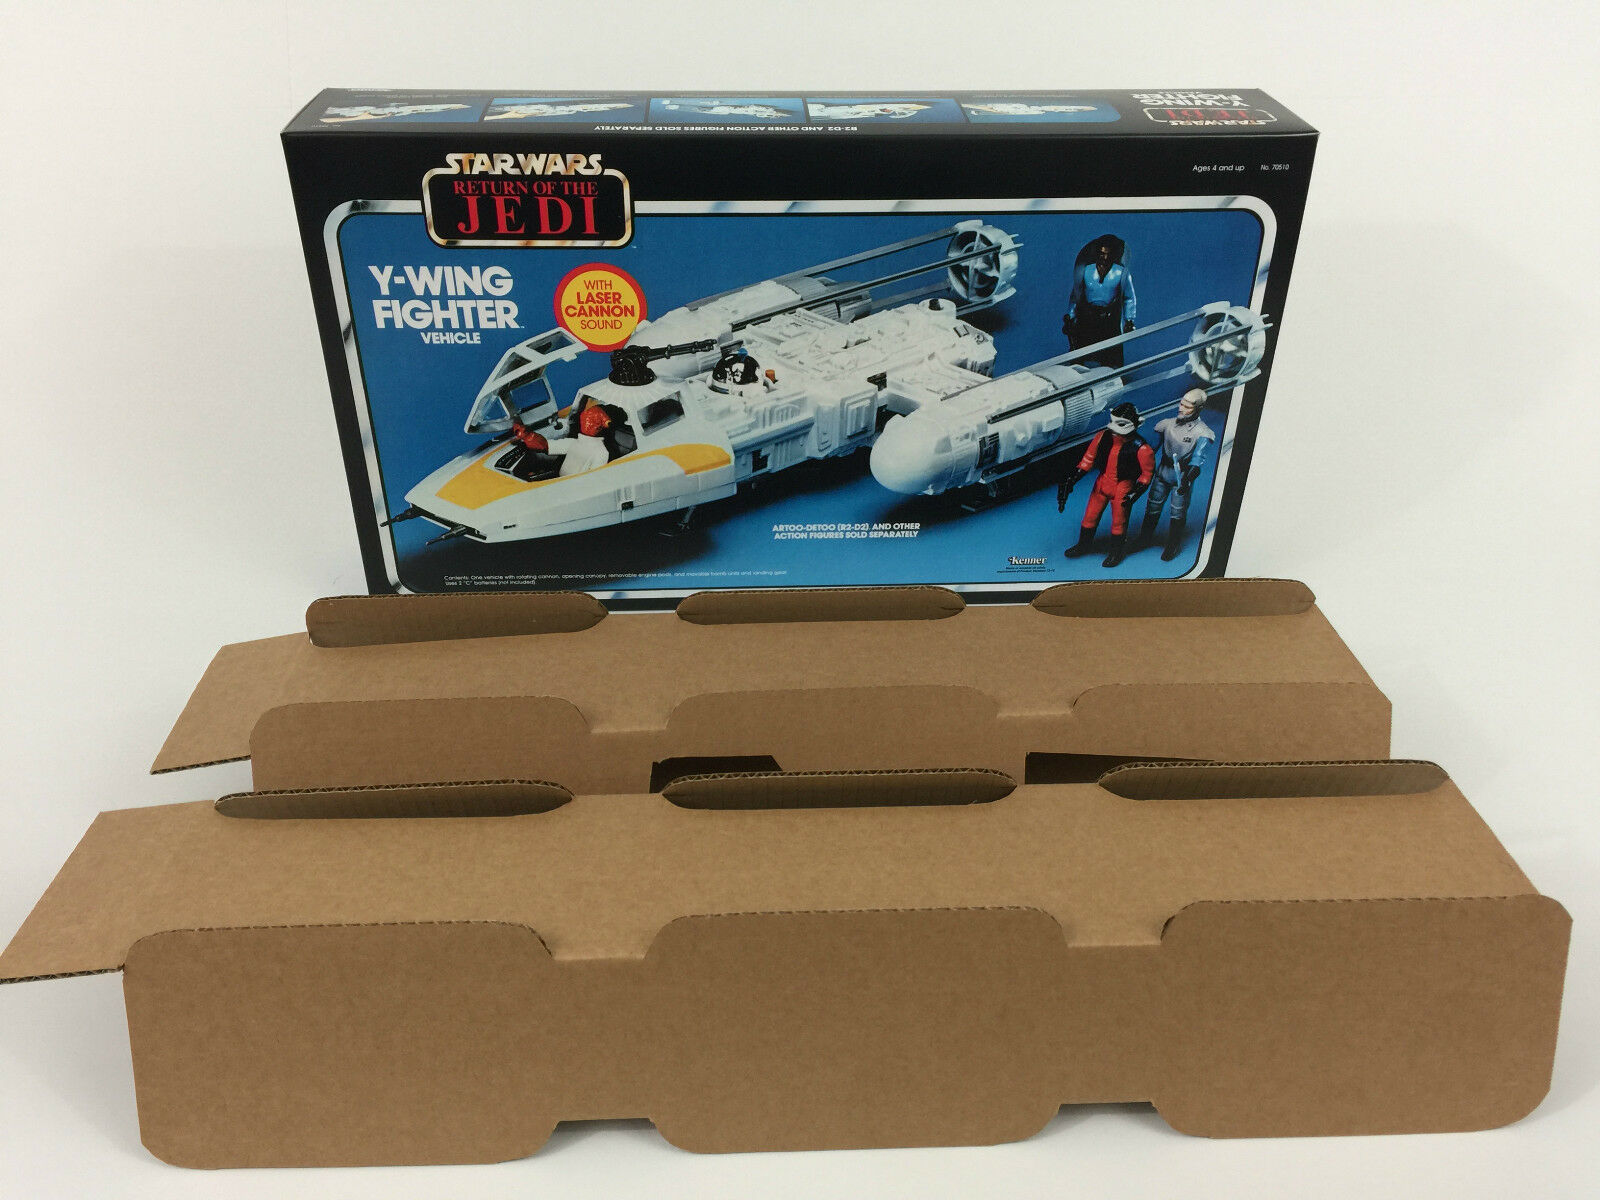 Replacement vintage star wars return of the jedi y-wing y-wing y-wing box + inserts 966b02